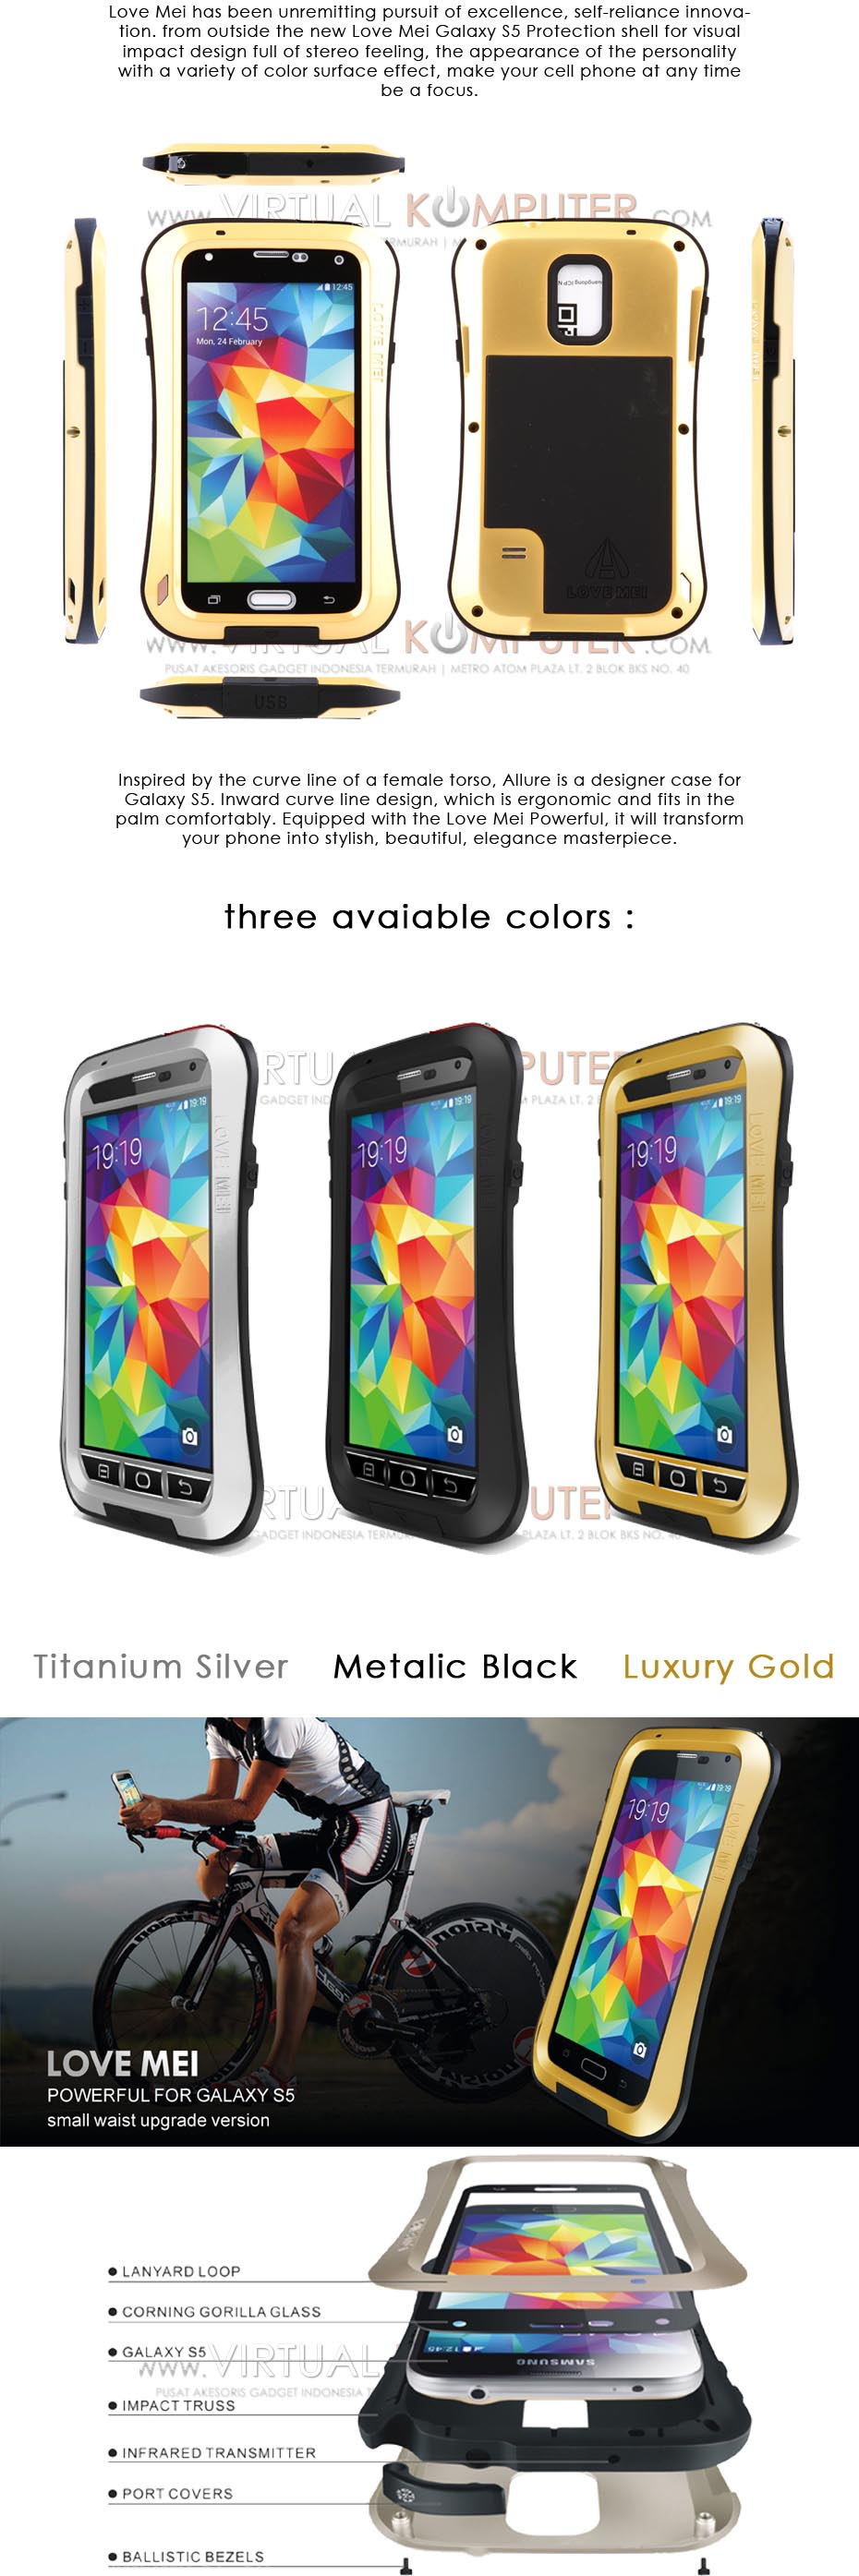 Love Mei Powerful Small Waist Upgrade Version for Samsung S5 SM-G900 Overview